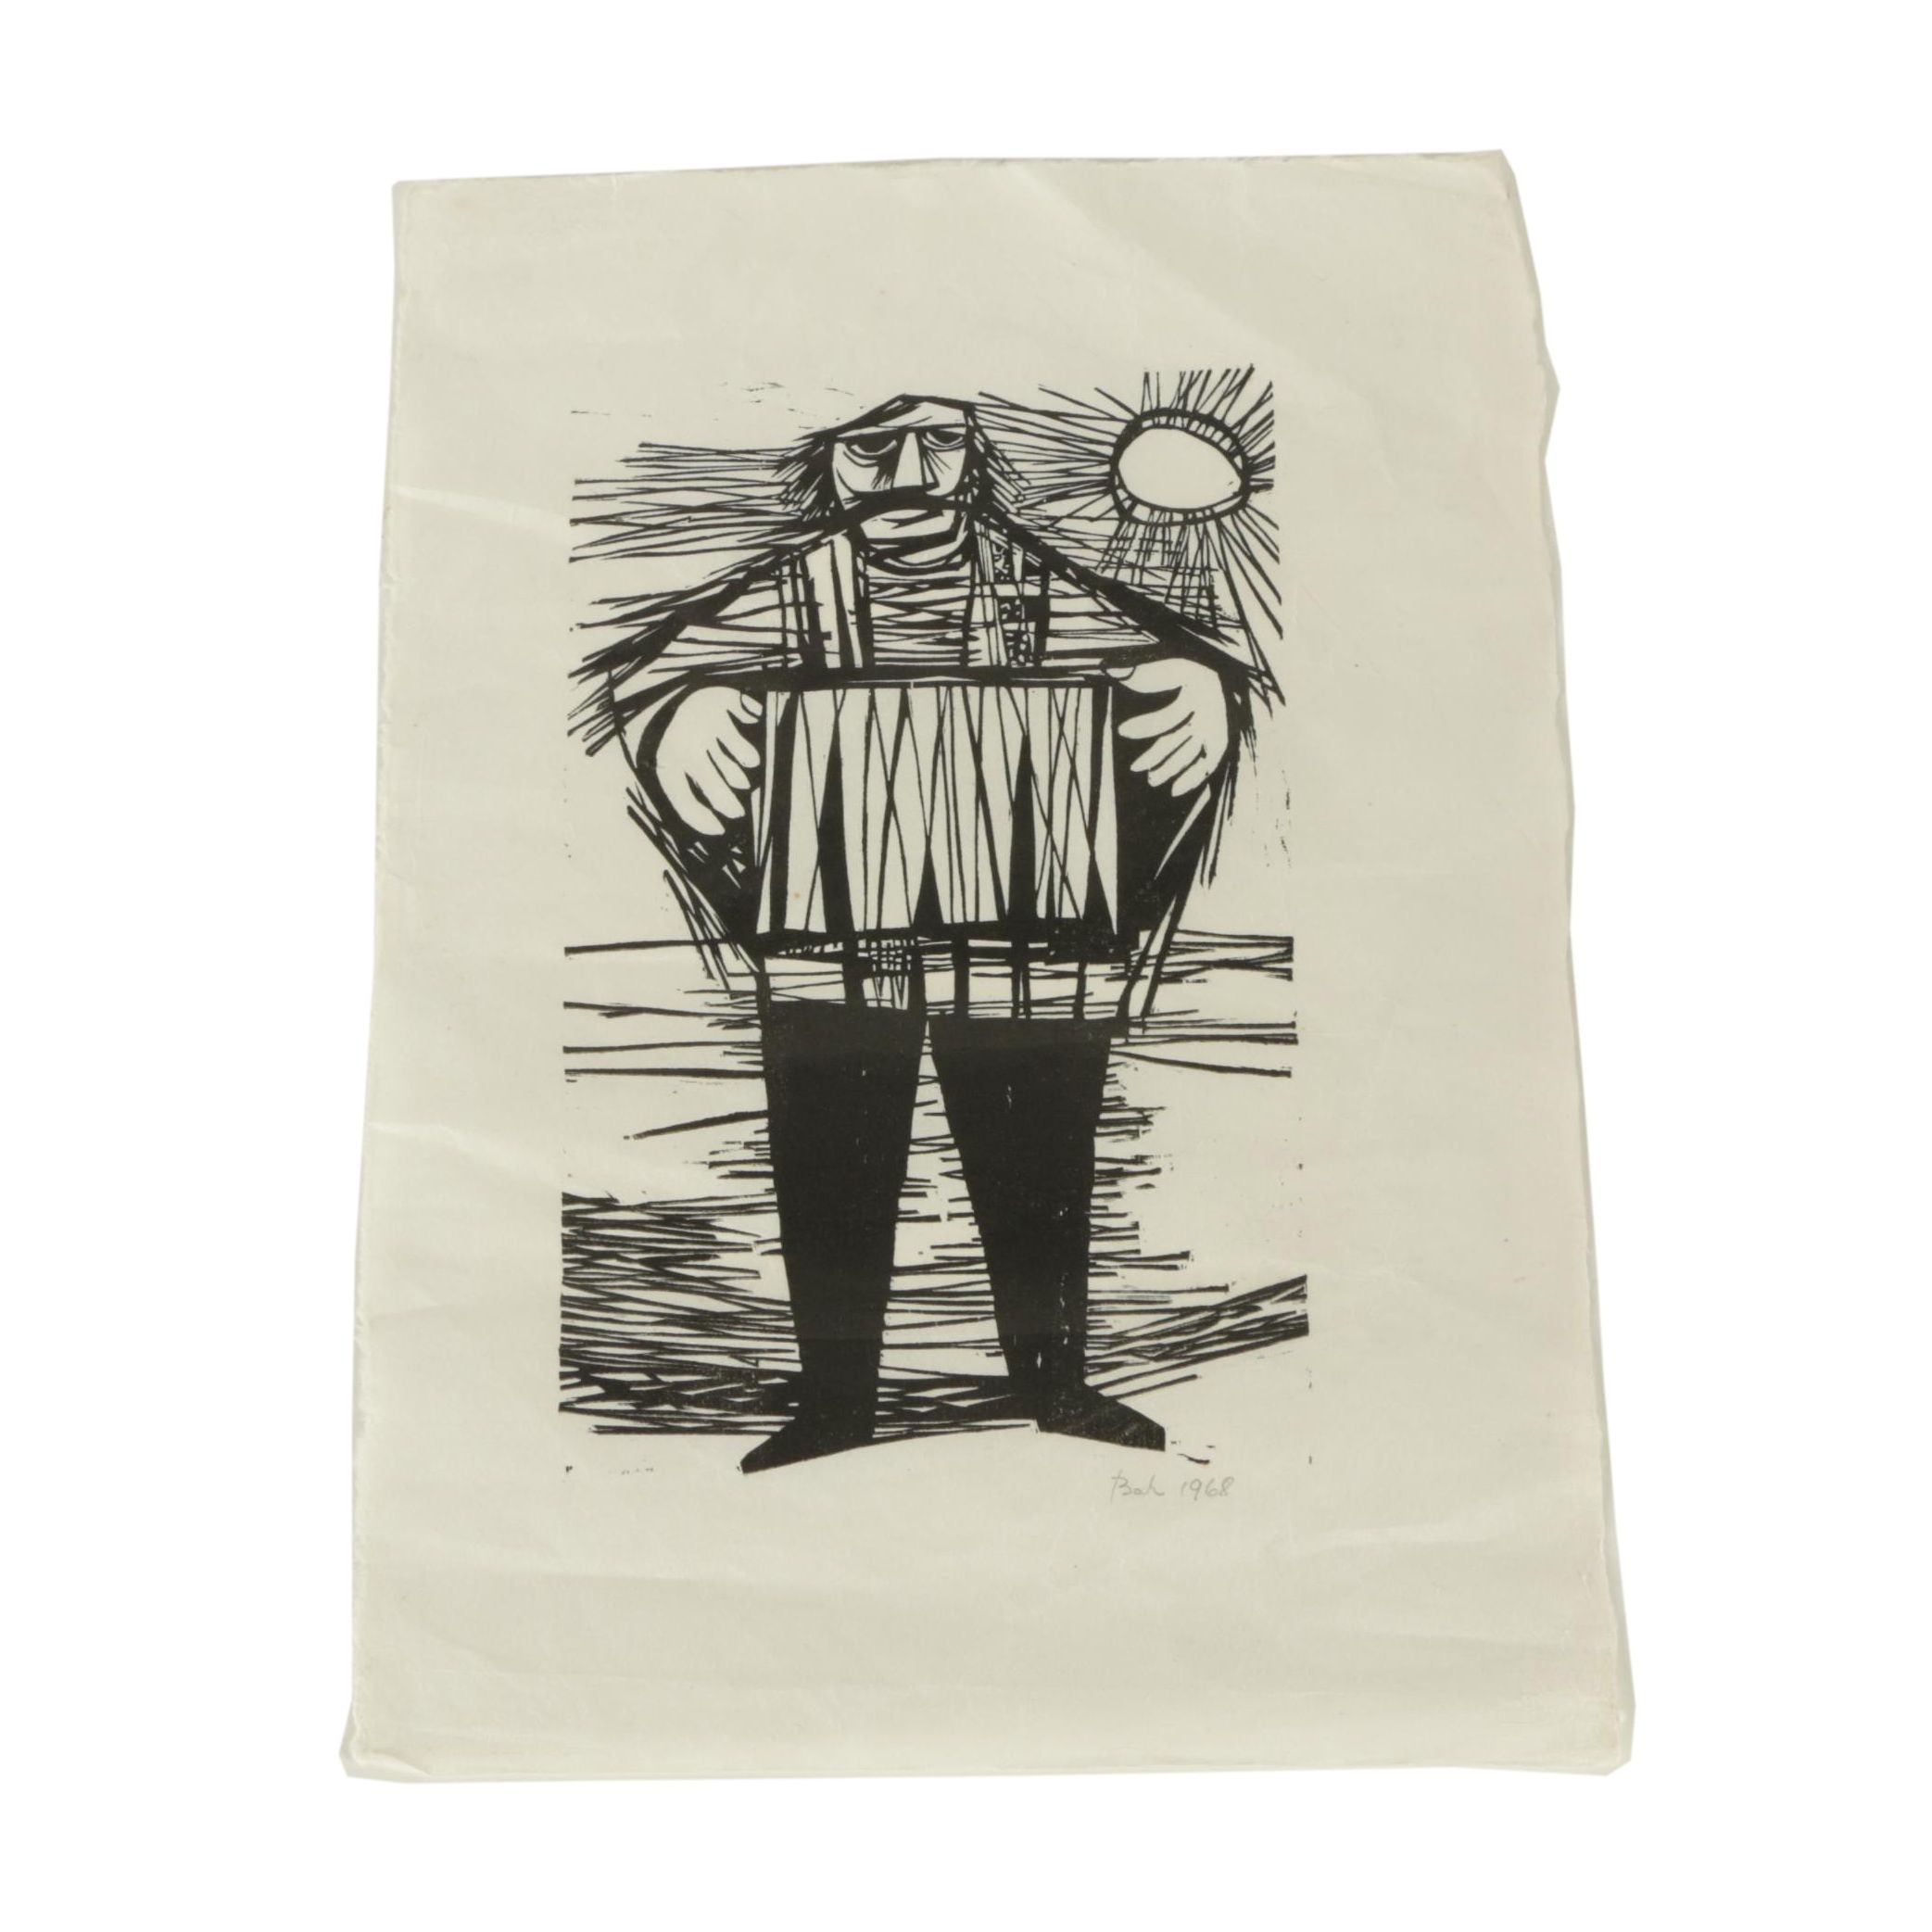 Bah Vintage Relief Print on Paper of a Figure with a Drum